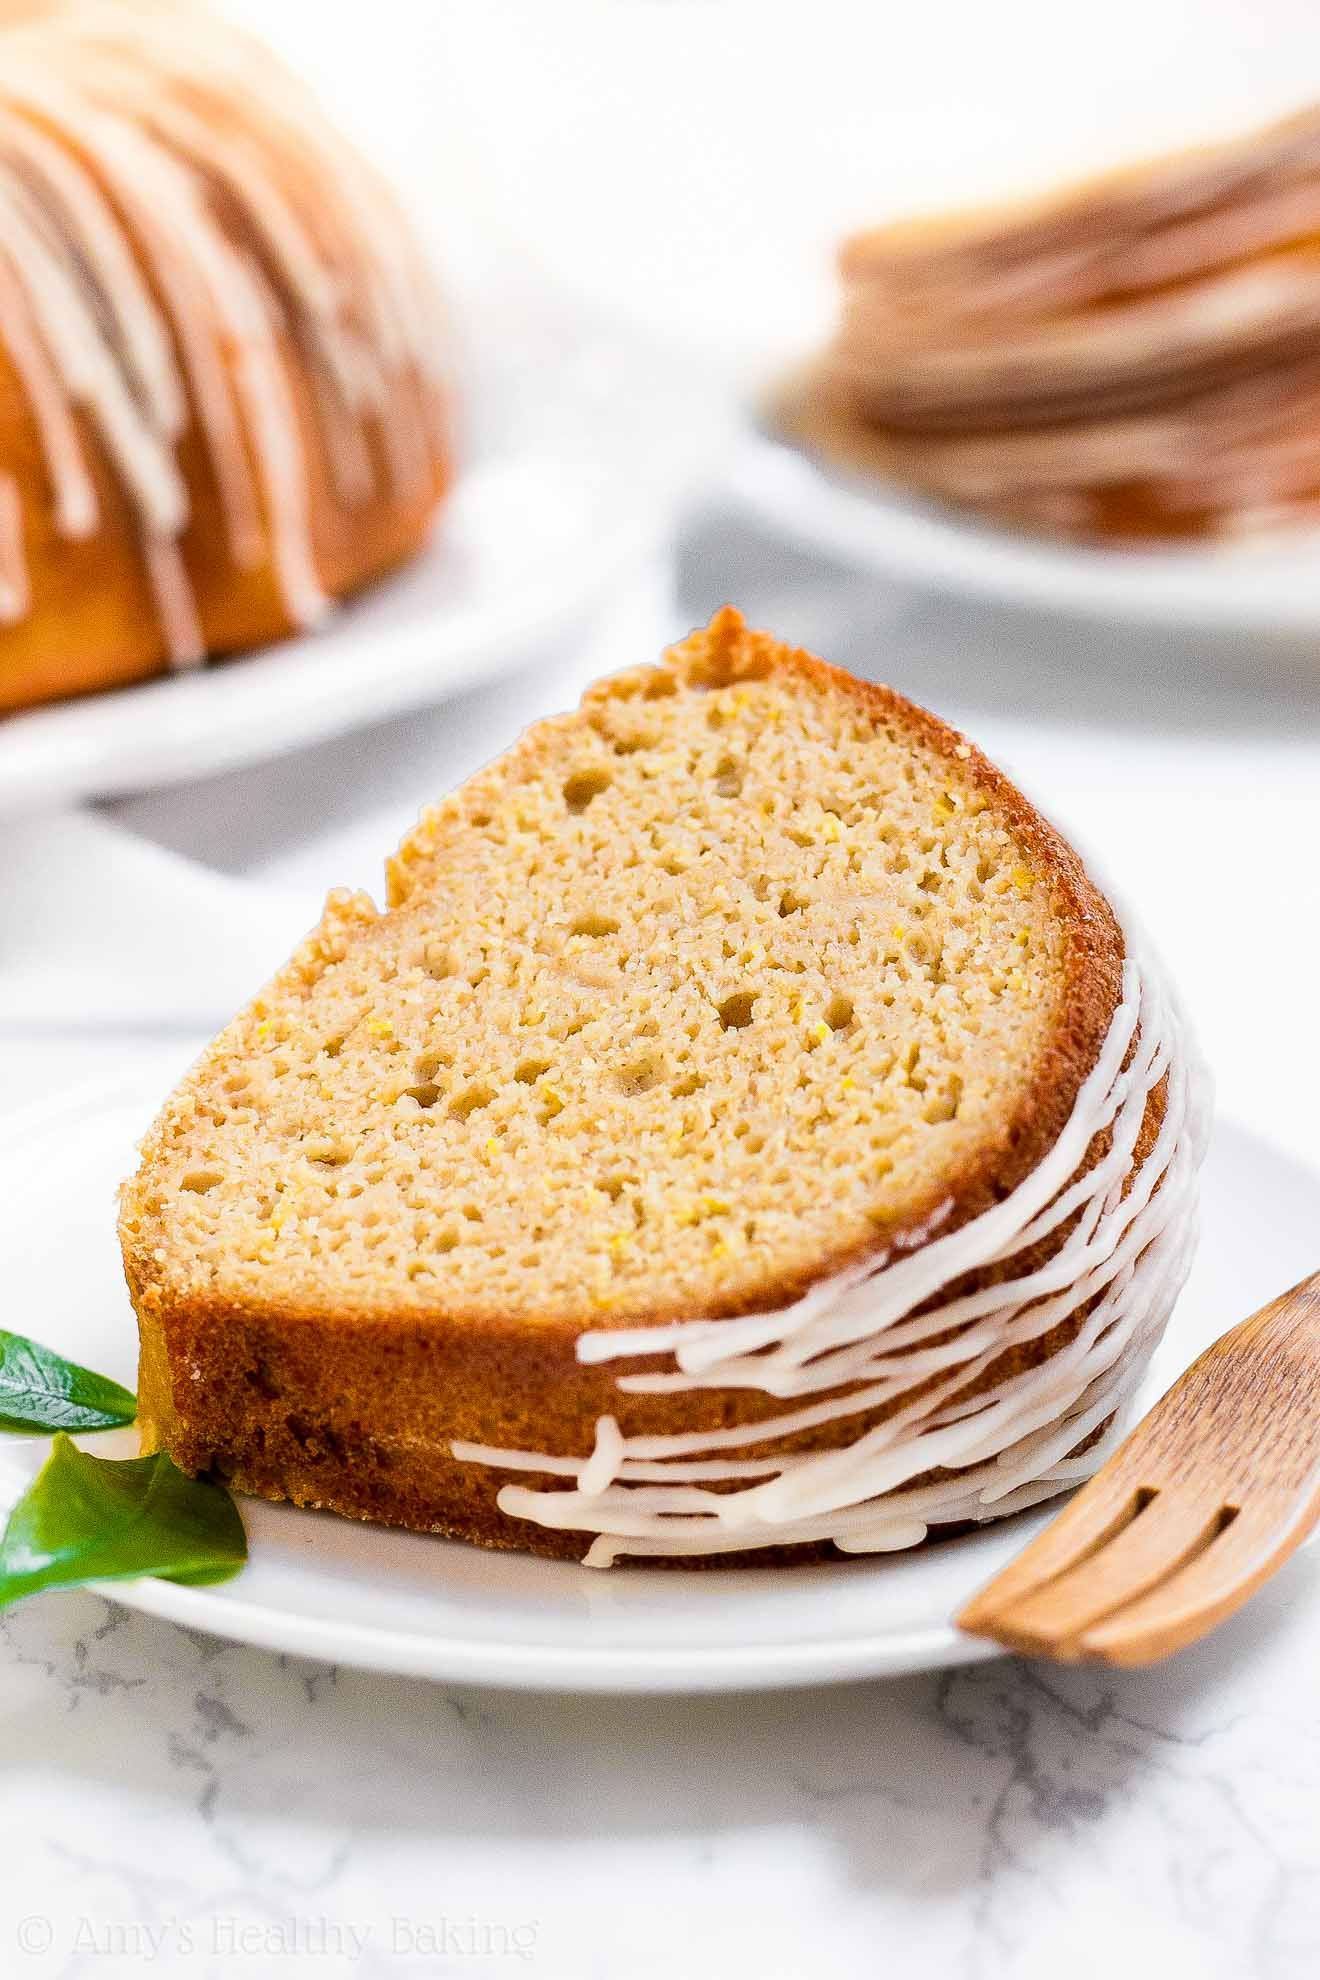 10+ Are nothing bundt cakes healthy inspirations